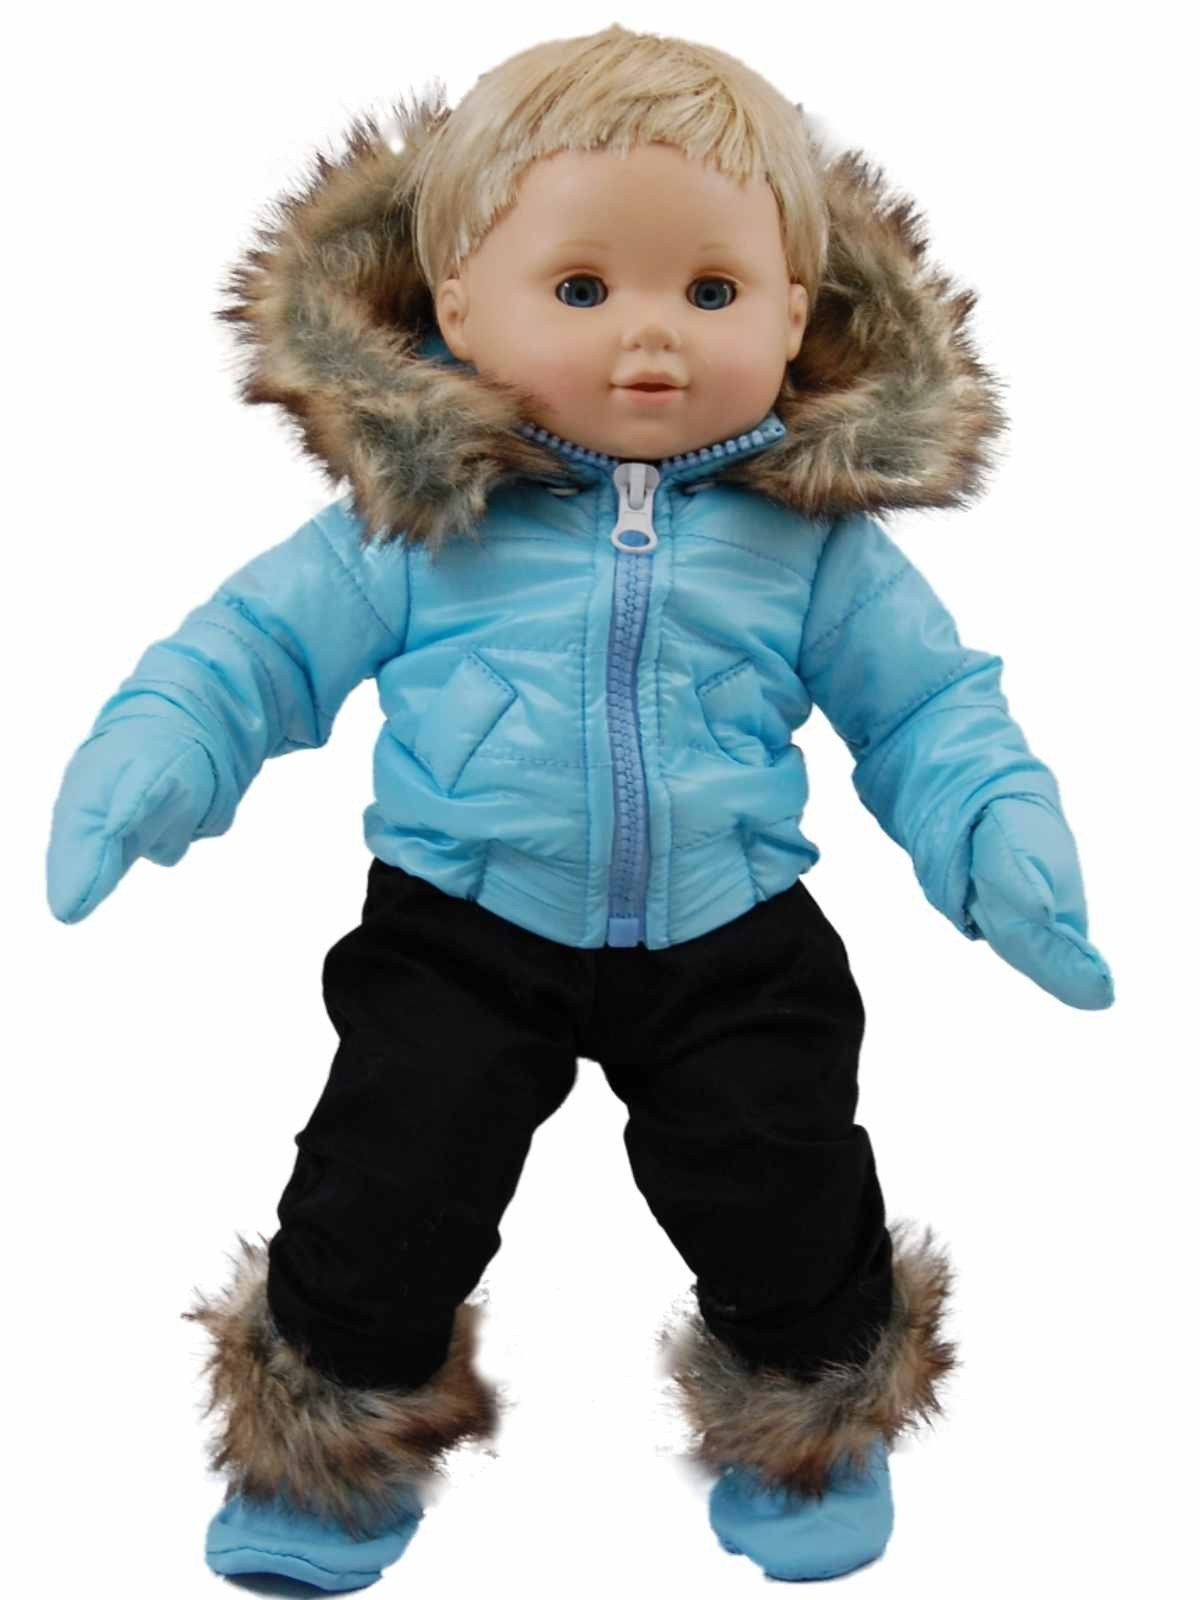 Blue Snow Suit Outfit For 15 Quot Bitty Baby Doll Clothes